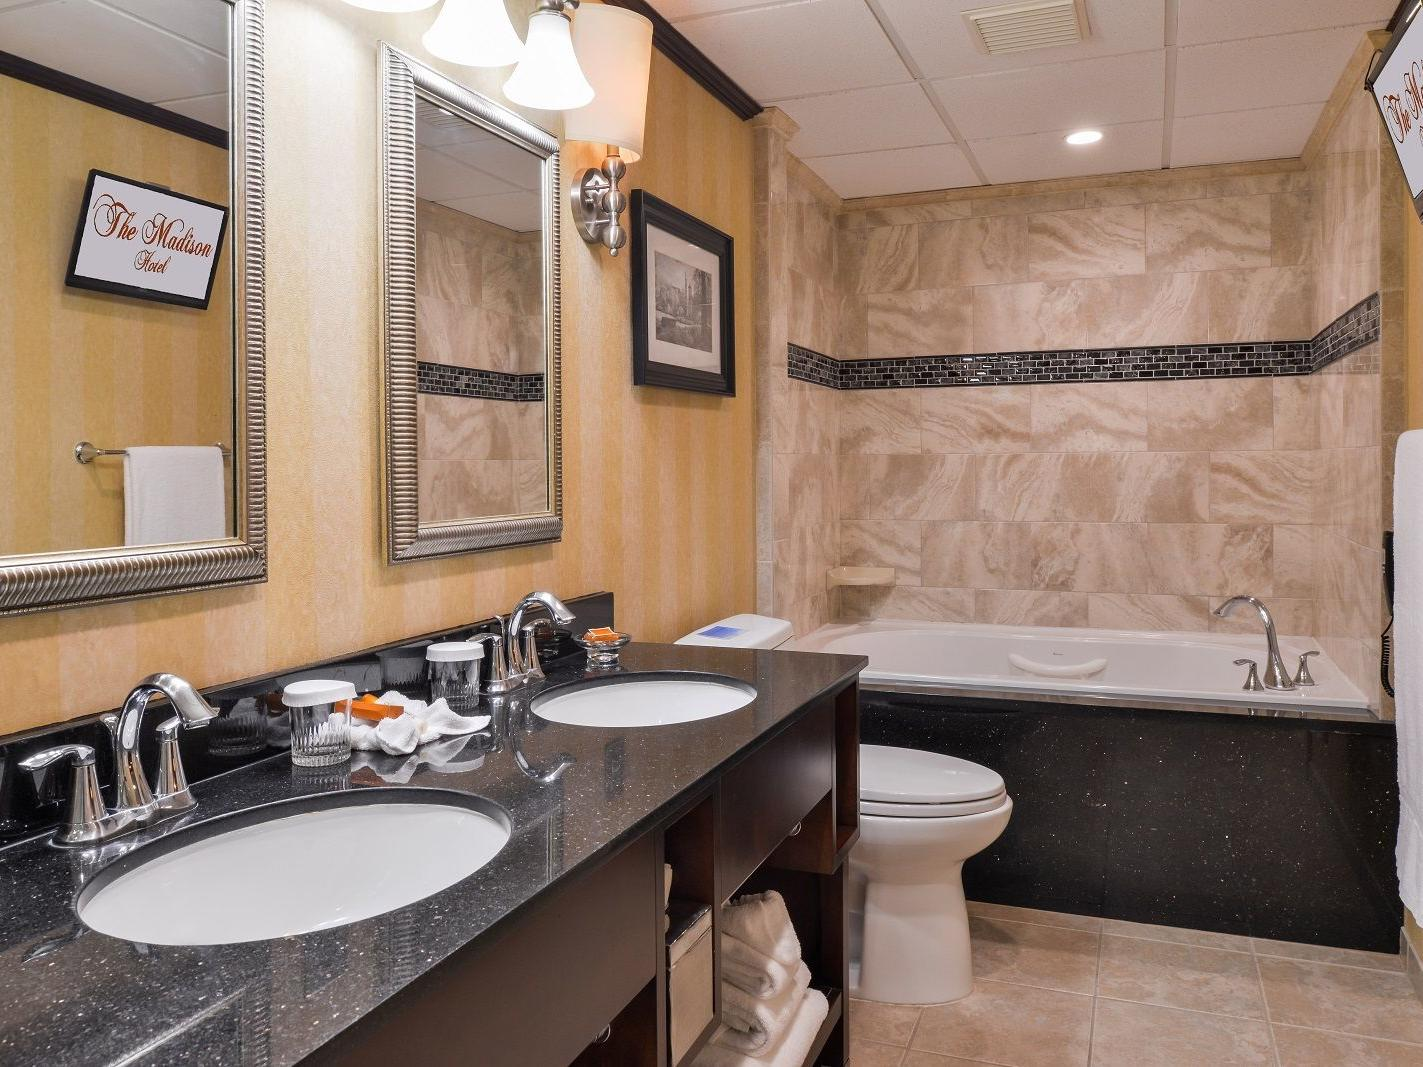 Spacious suite bathroom with two sinks and tub